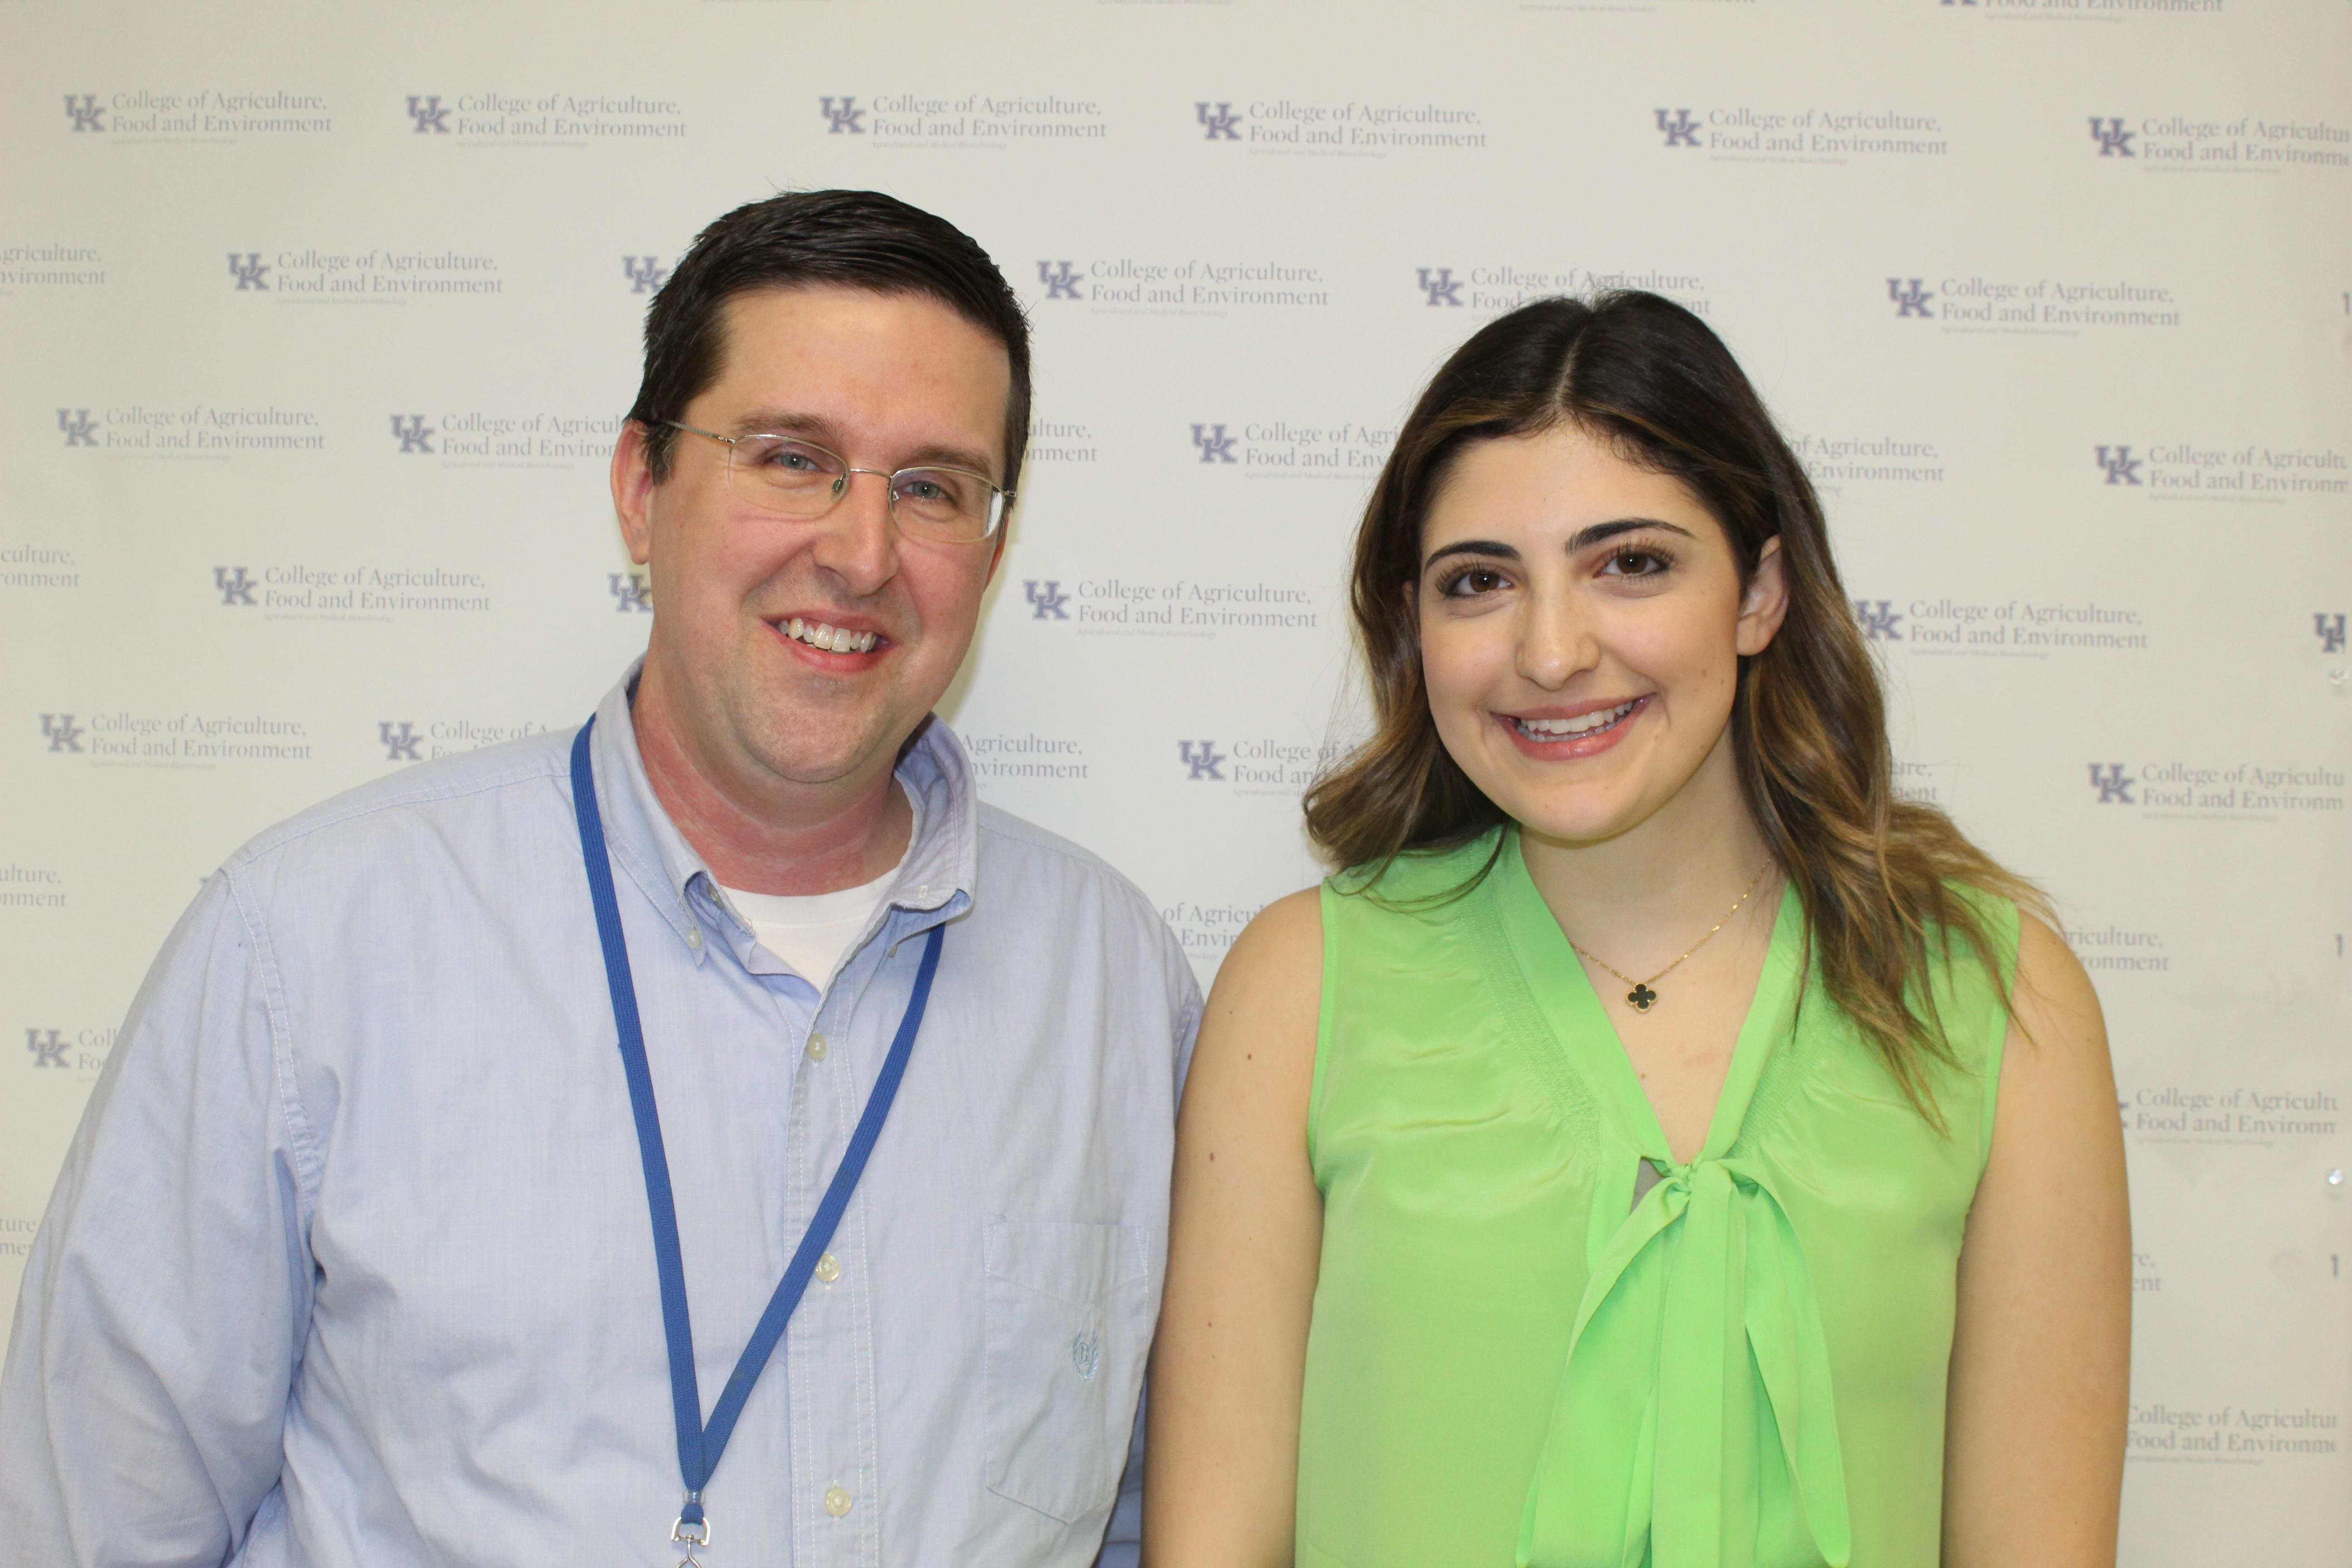 Nicole Bacha and her research mentor, Dr. Sean Thatcher